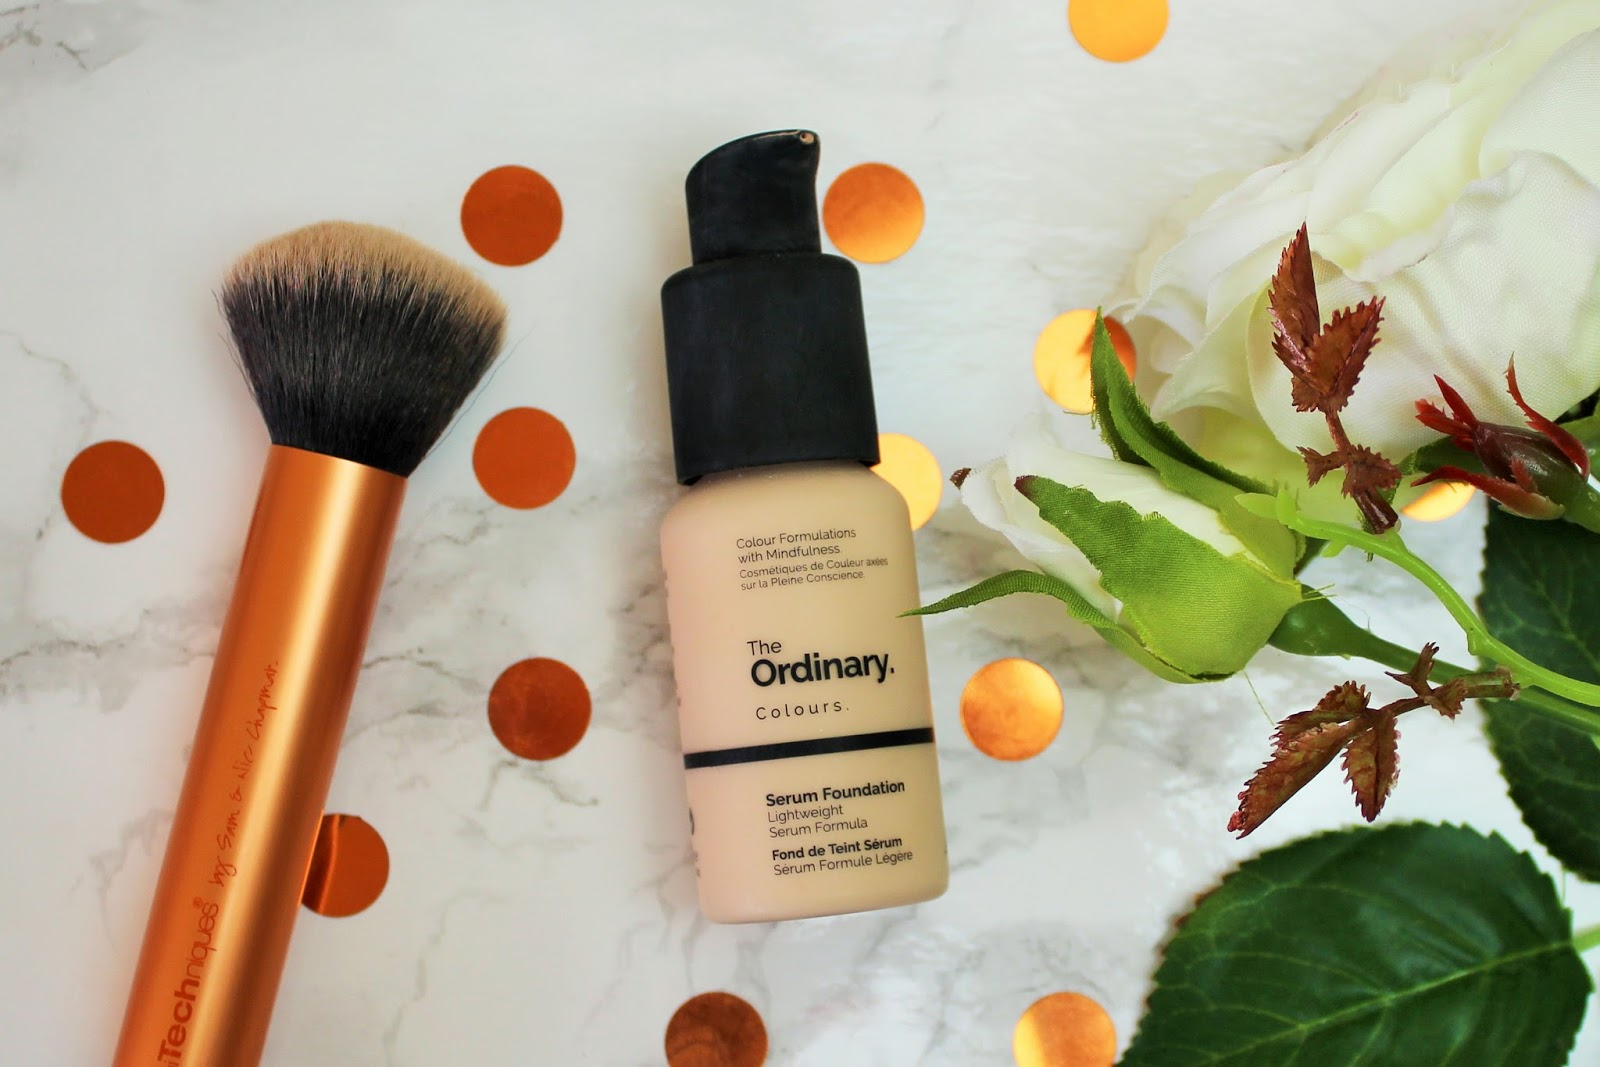 The Ordinary Serum Foundation Review - Does Your Skin Type Matter? - 2